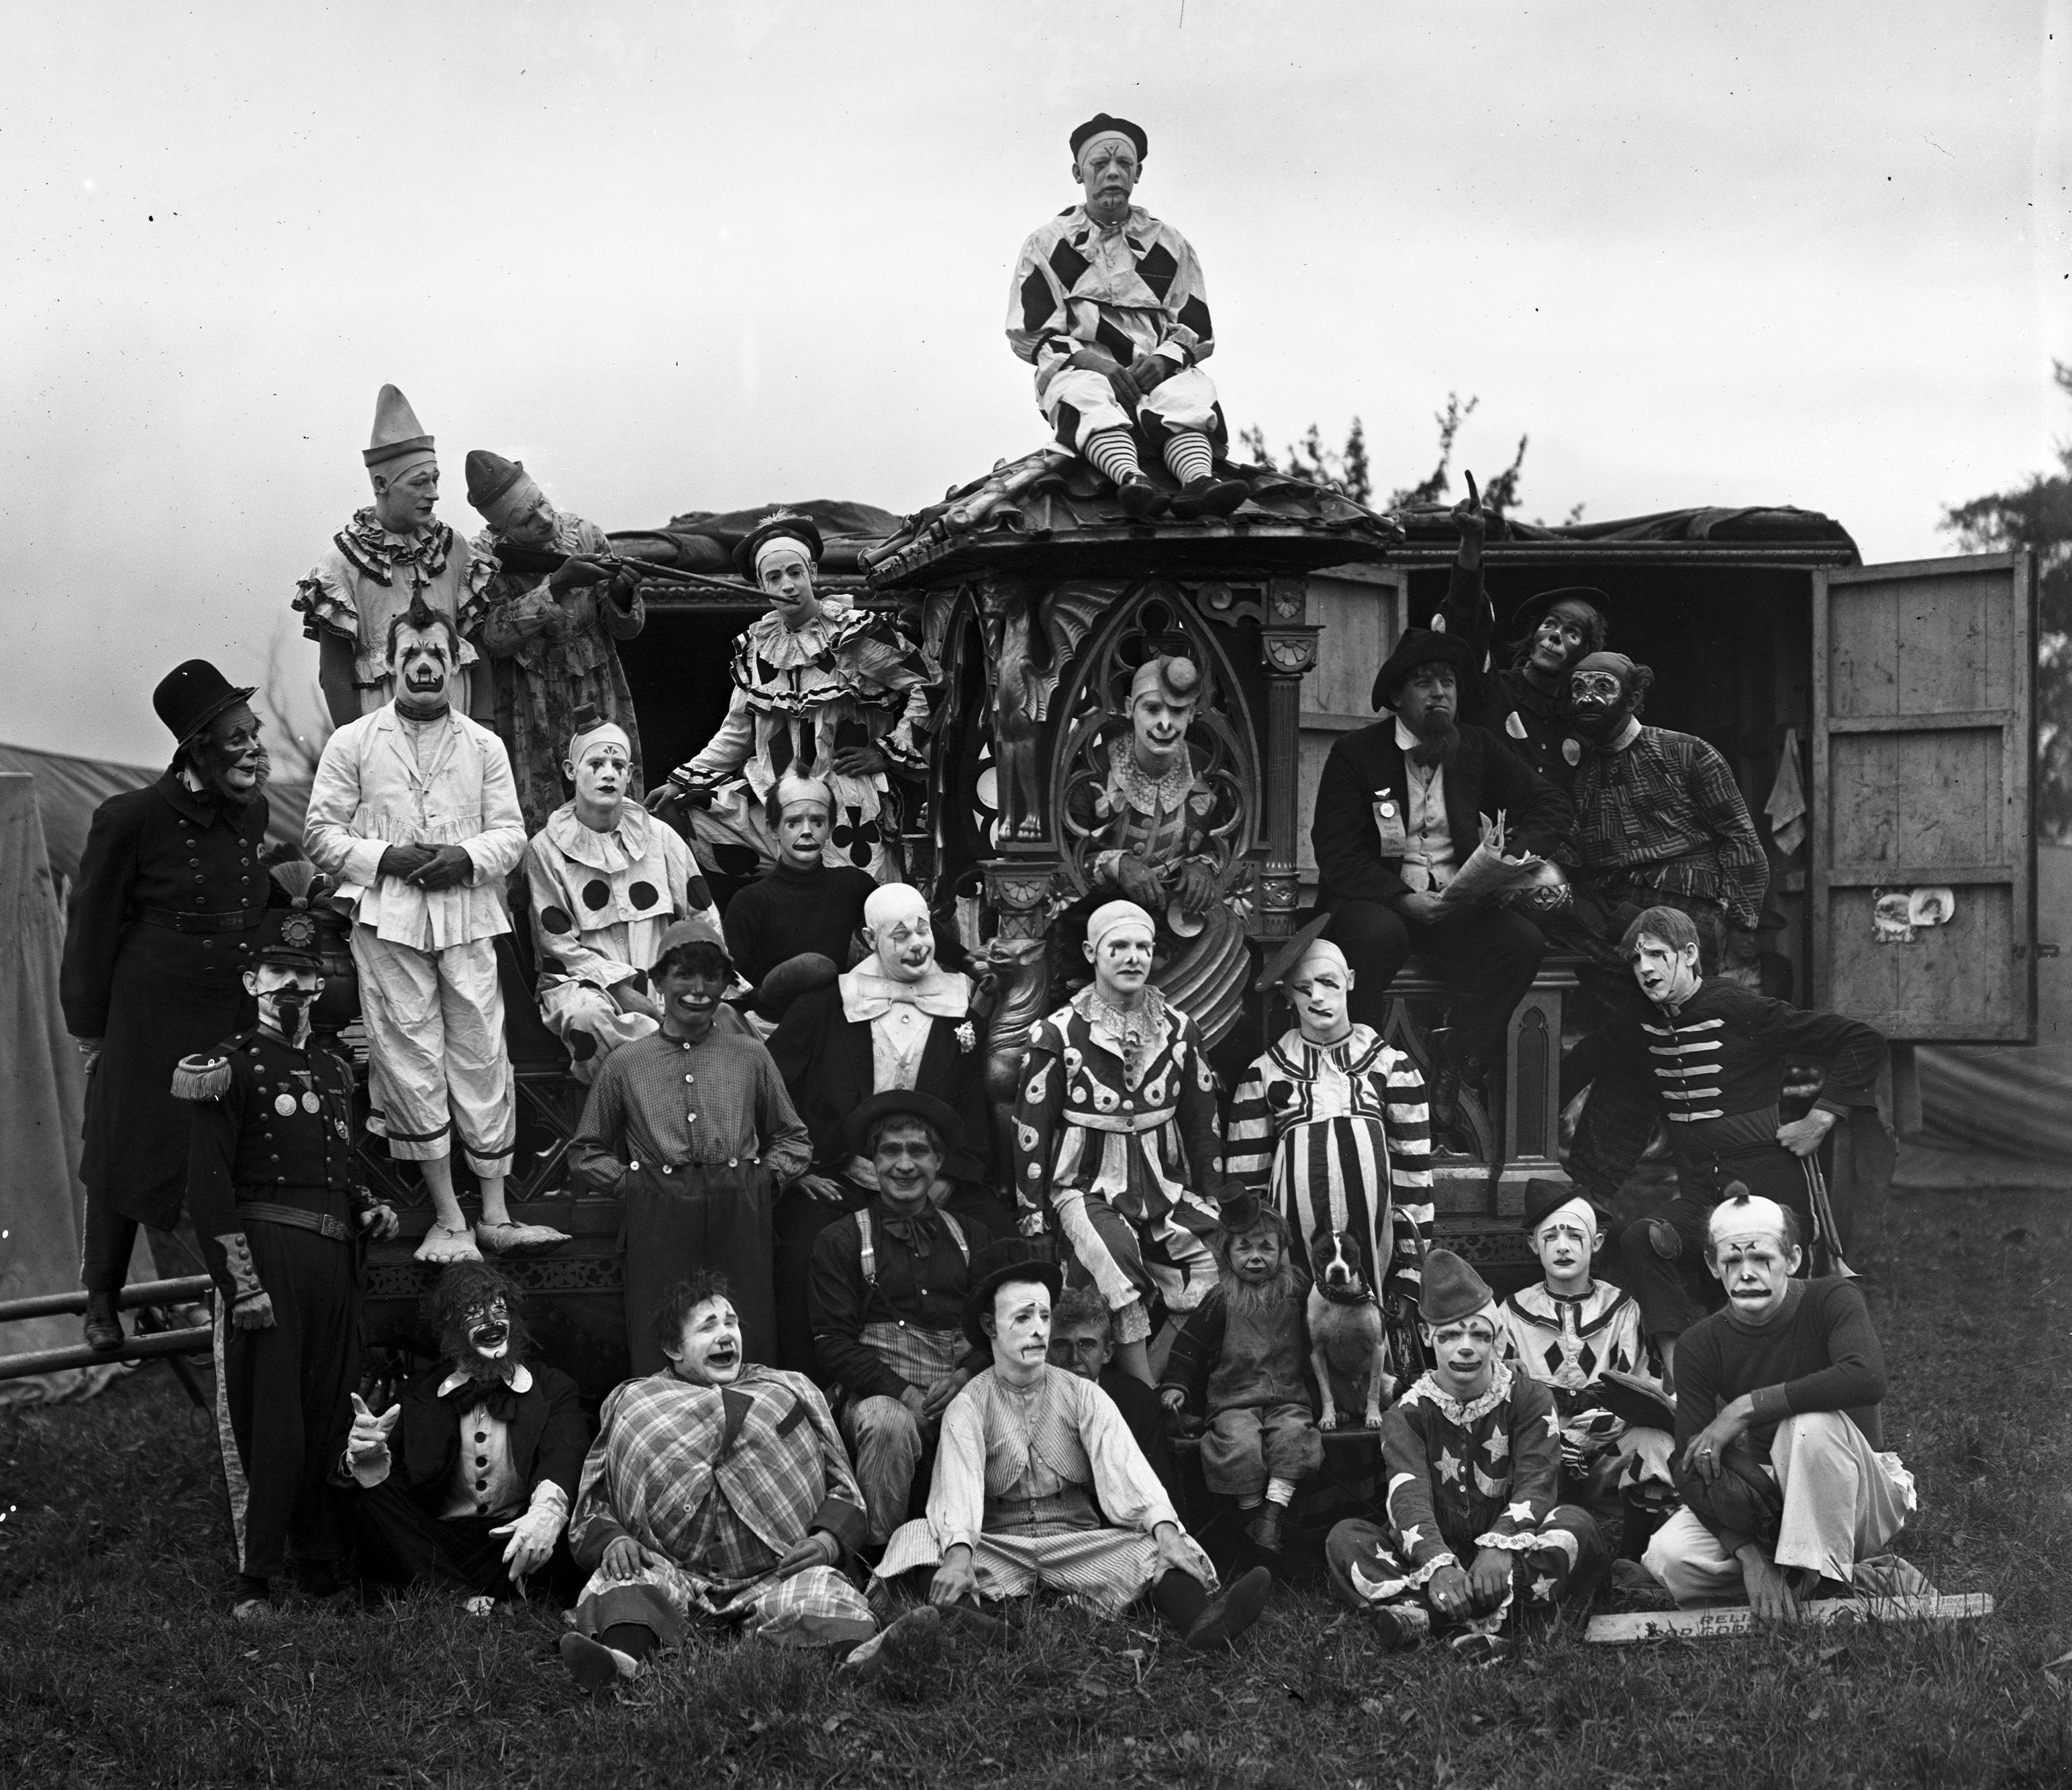 A group of clowns poses together in the early 20th century